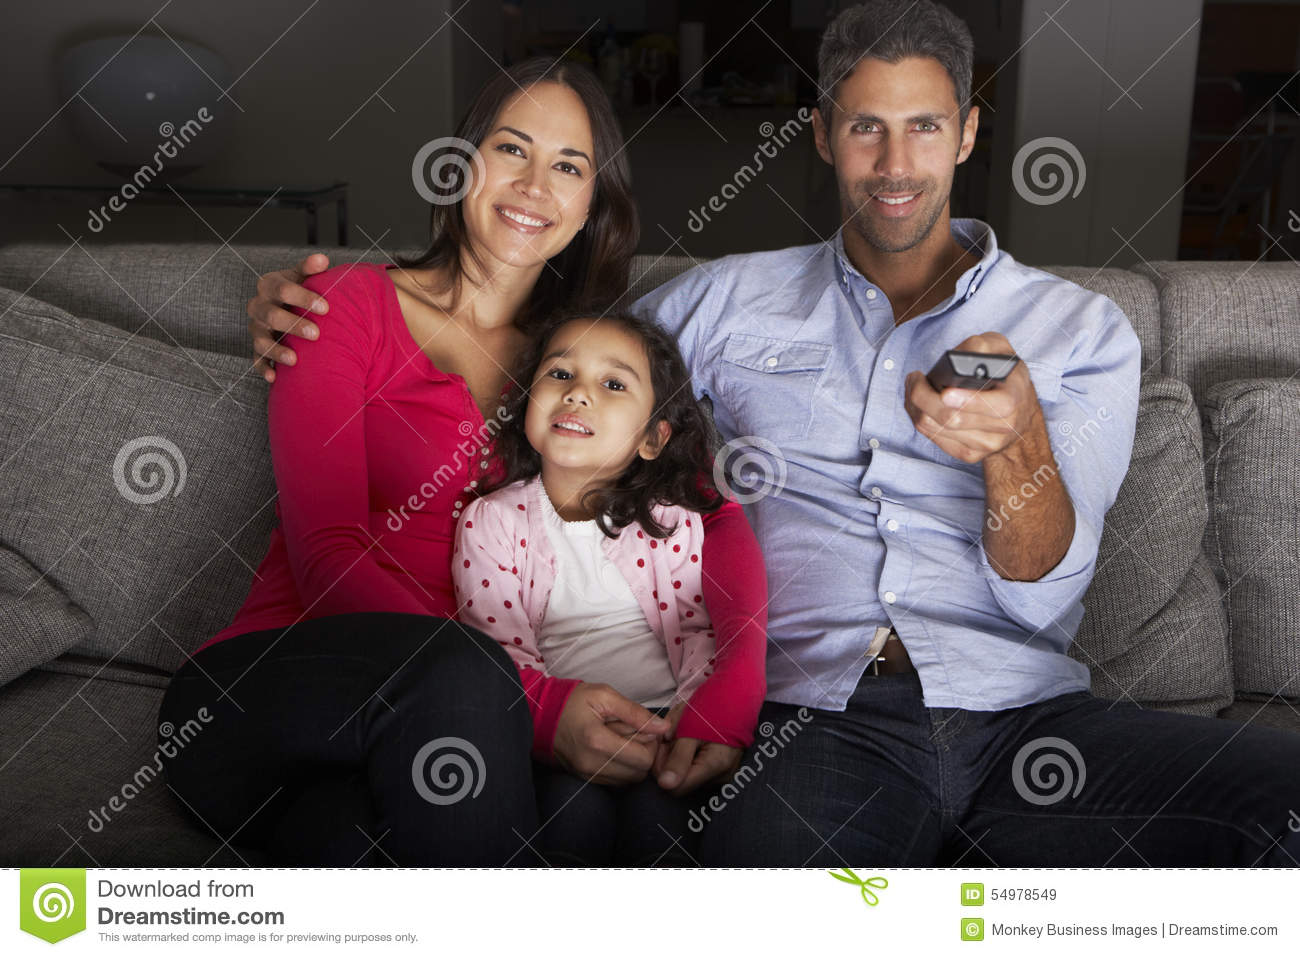 Famille hispanique s asseyant sur Sofa And Watching TV